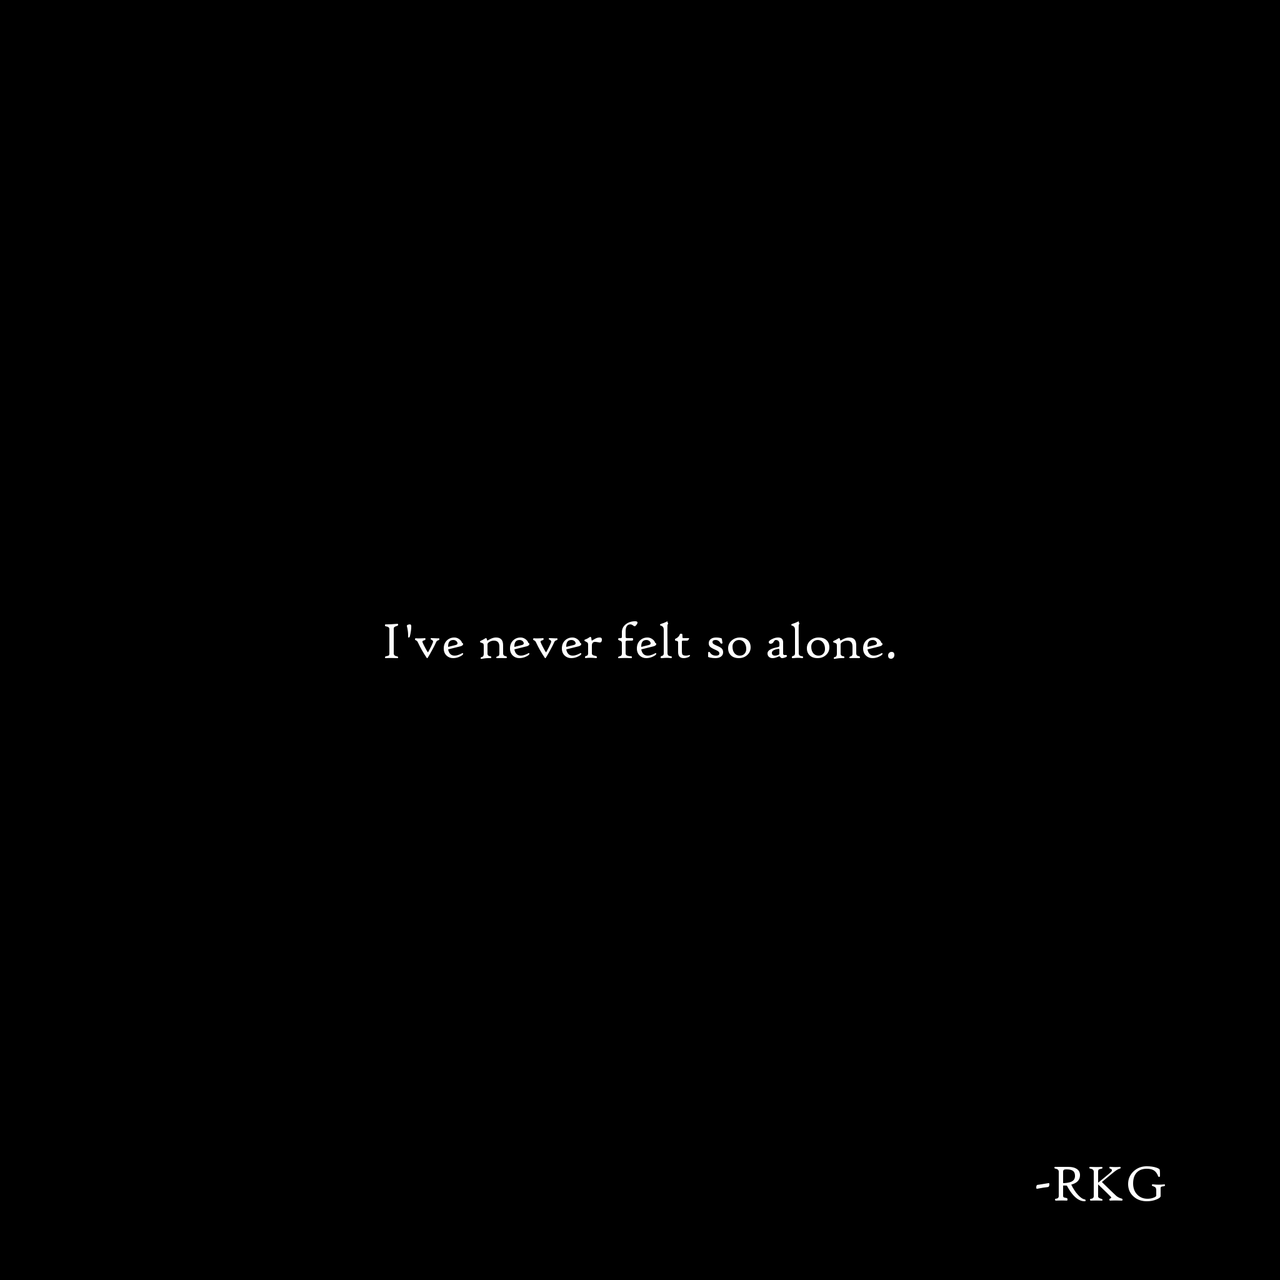 alone, black and white, and broken hearted image